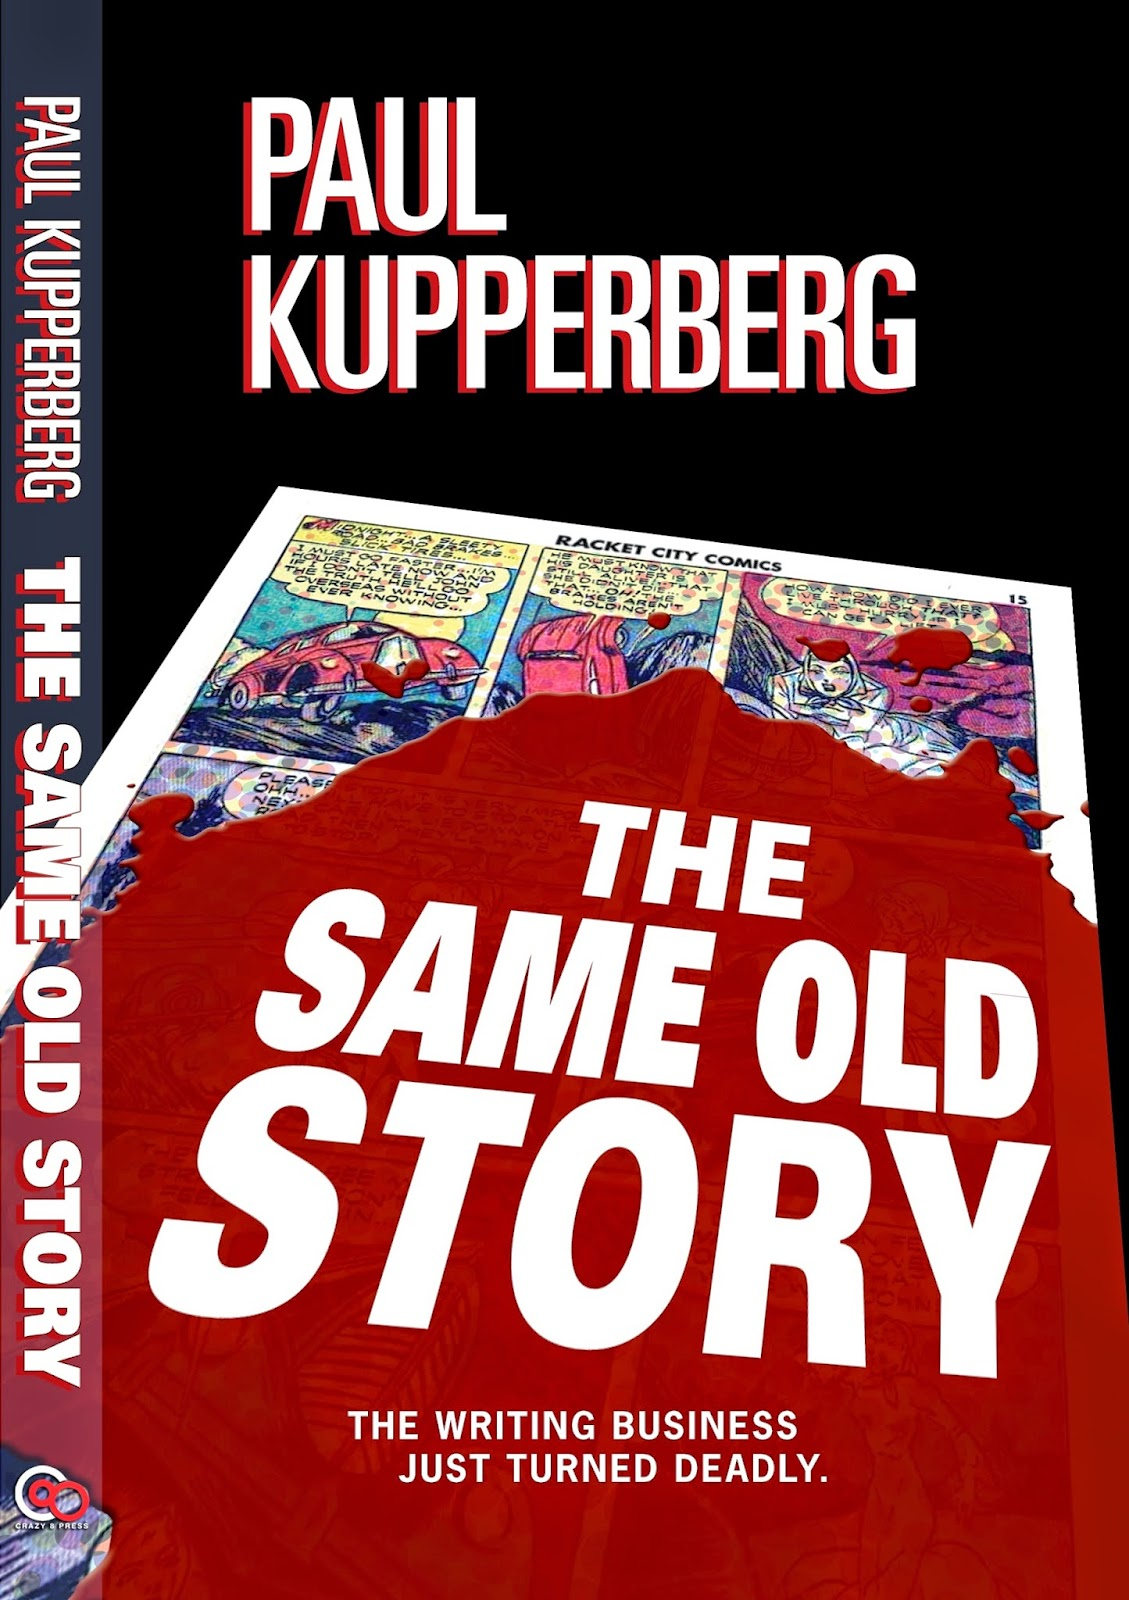 http://www.crazy8press.com/our-books/the-same-old-story/